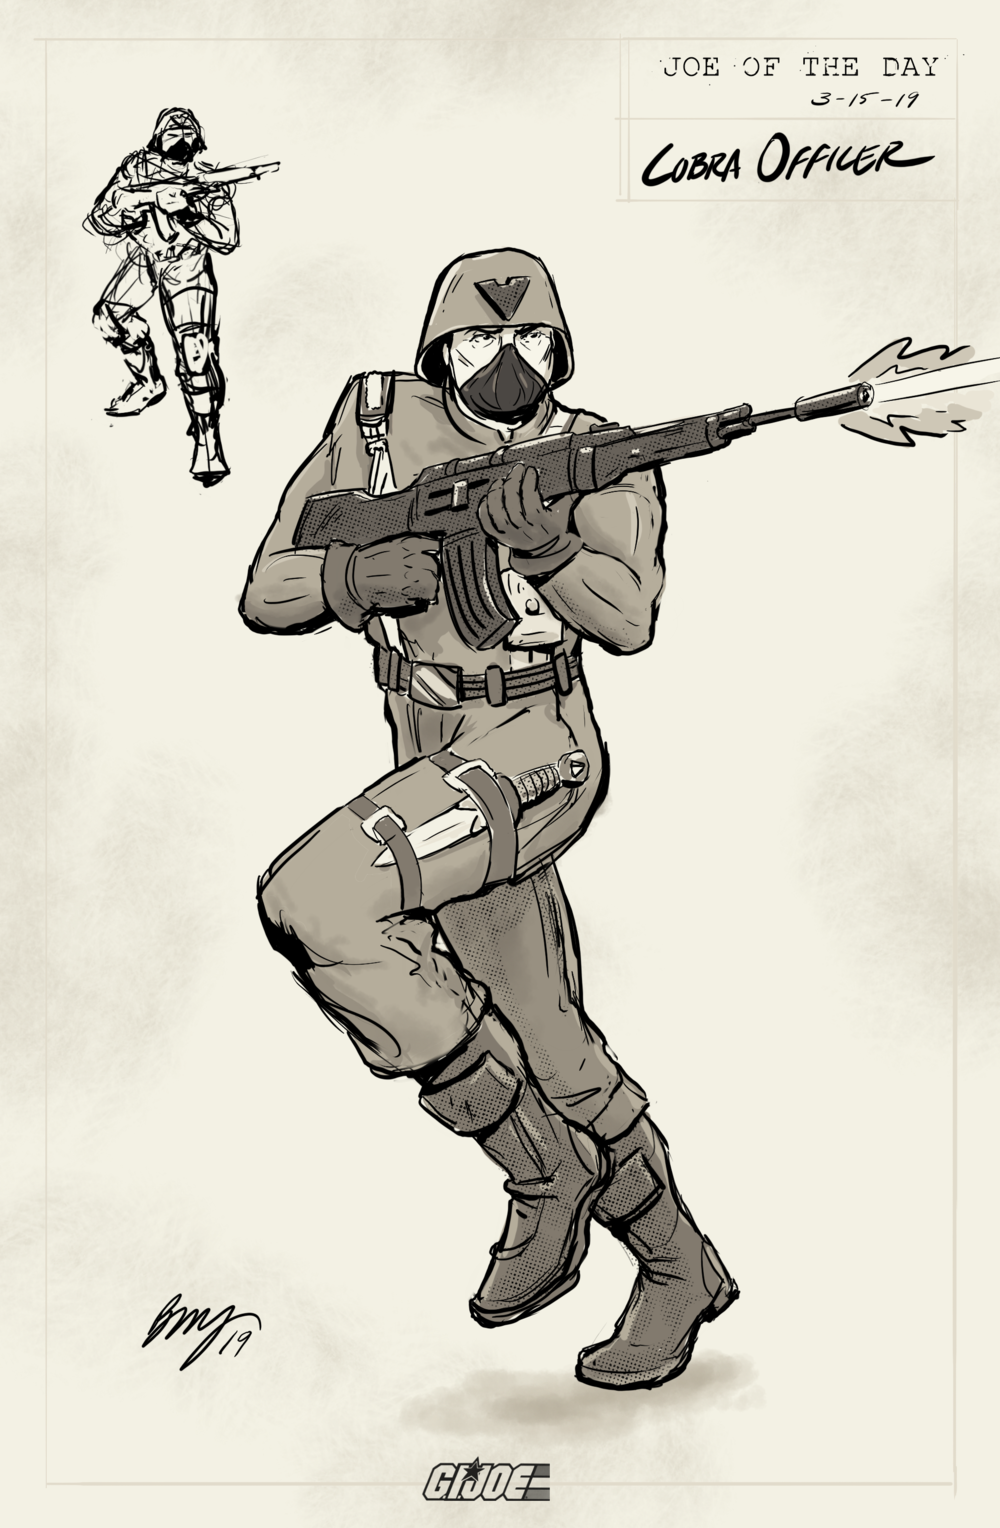 Cobra Officer_3_15_20.png